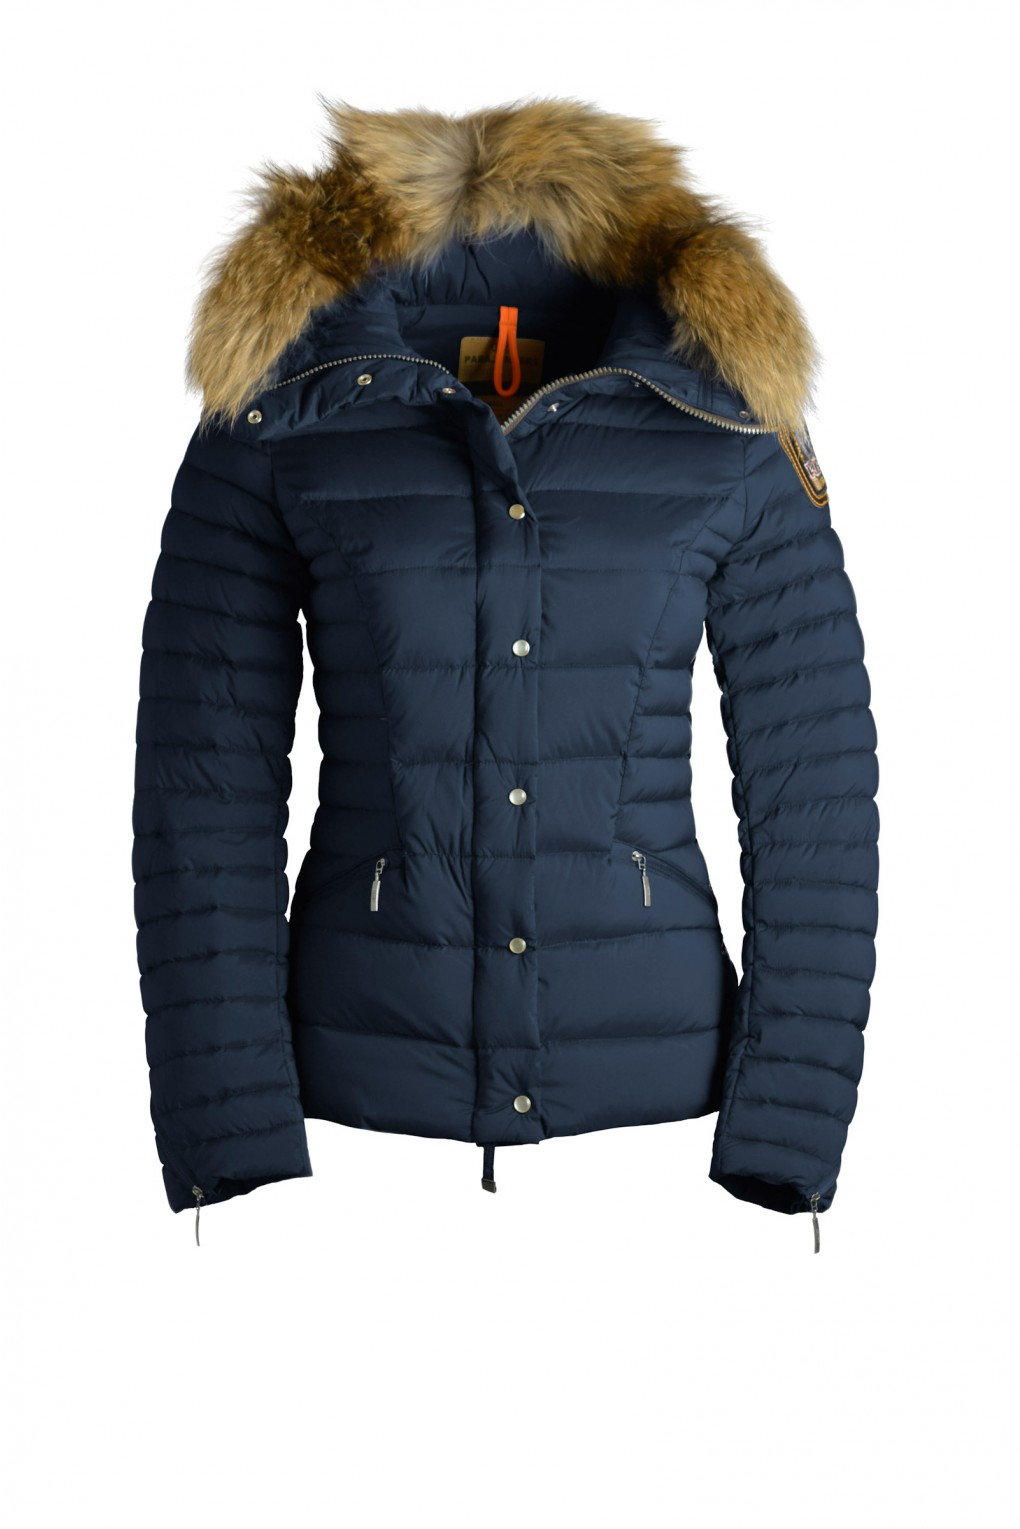 parajumpers MARLENE woman outerwear Marine